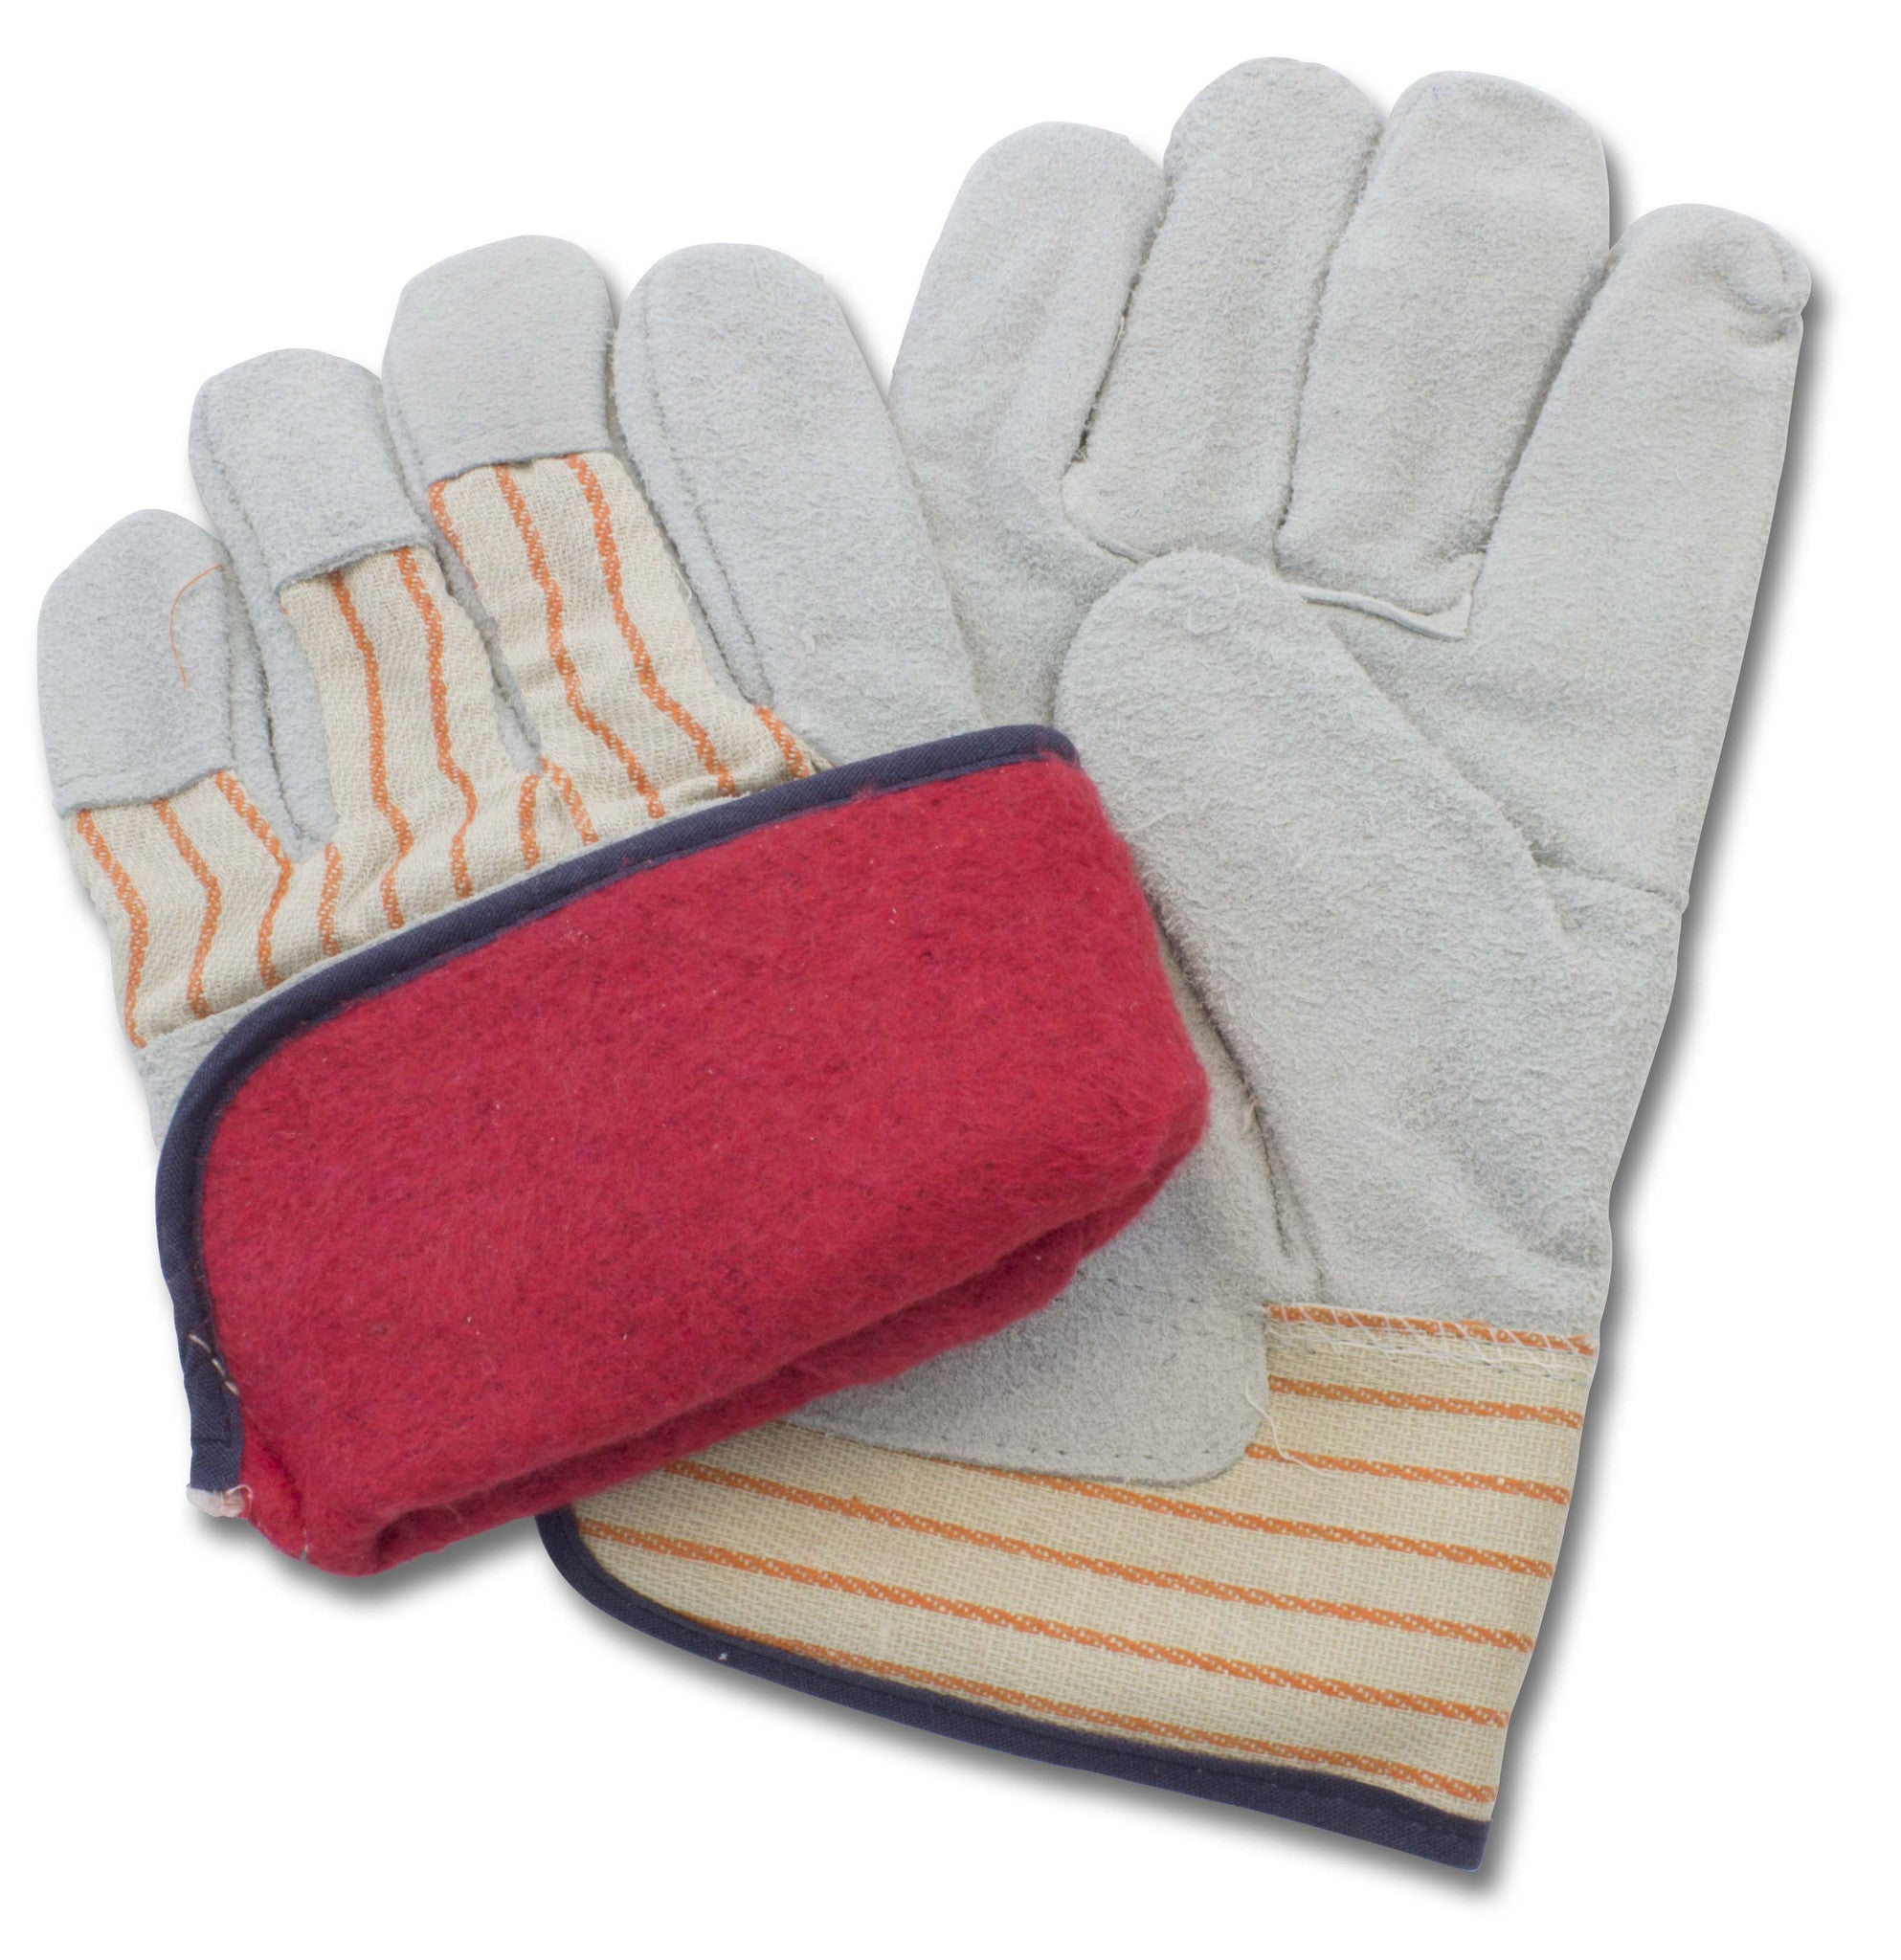 GLOVES/ Work/ Leather Palm Gloves